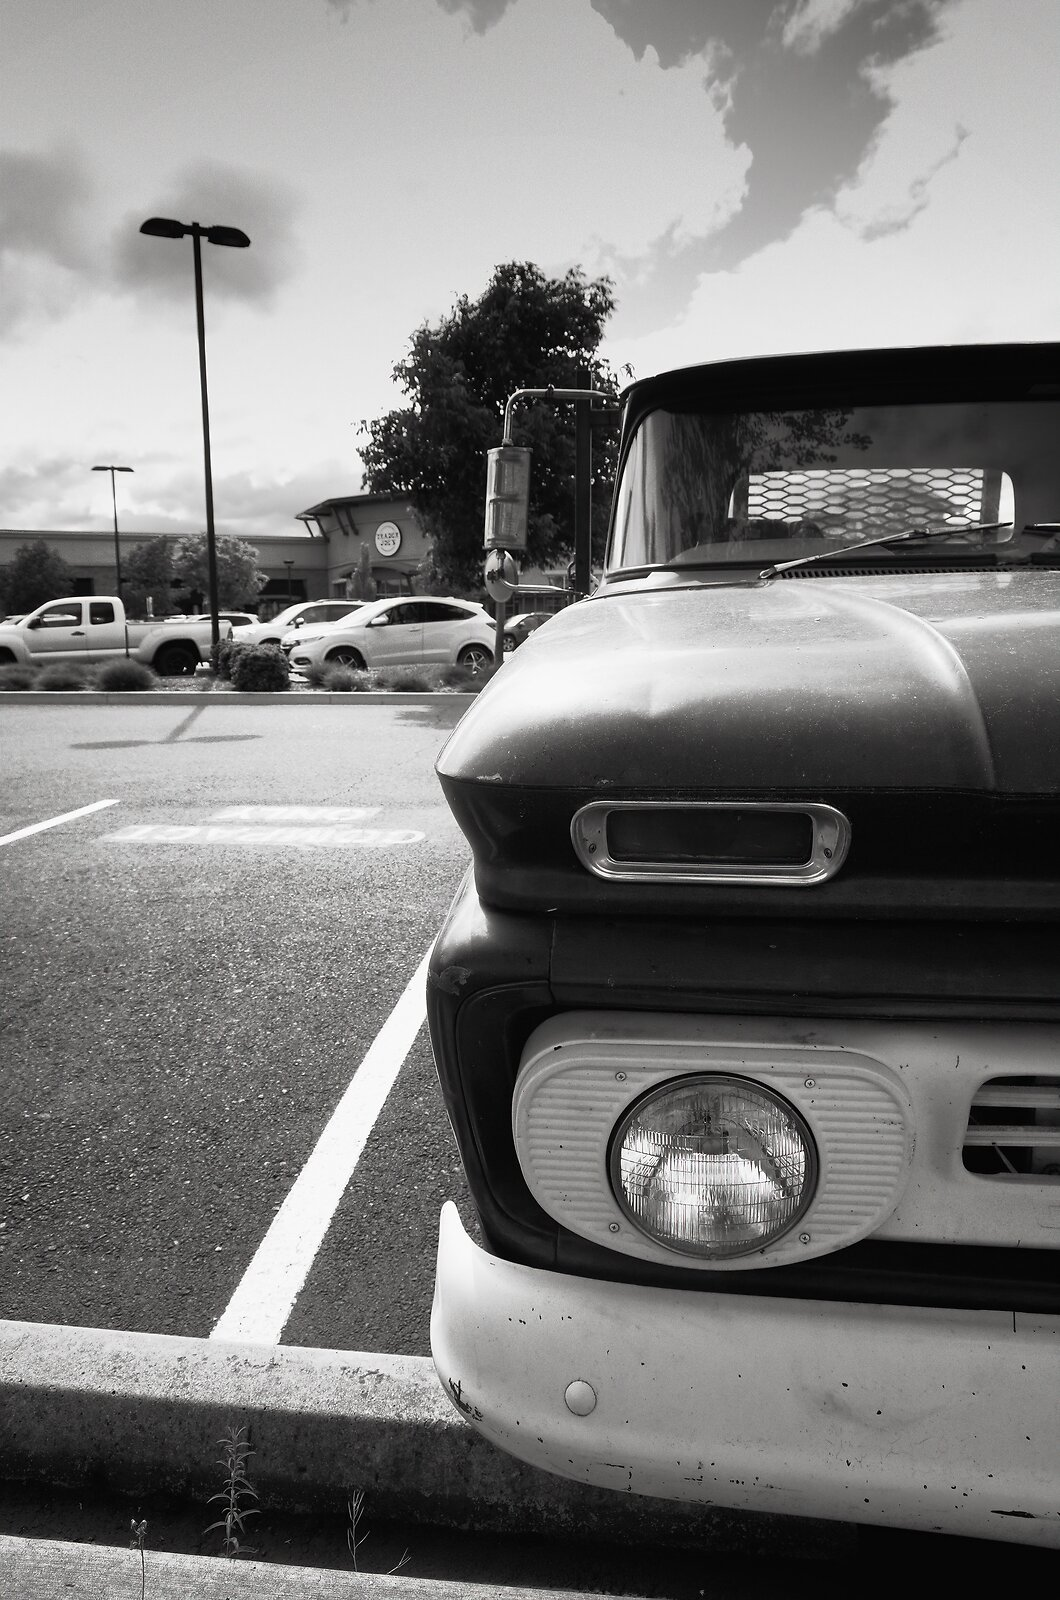 GRII_May22_pickup_in_parking_lot.jpg